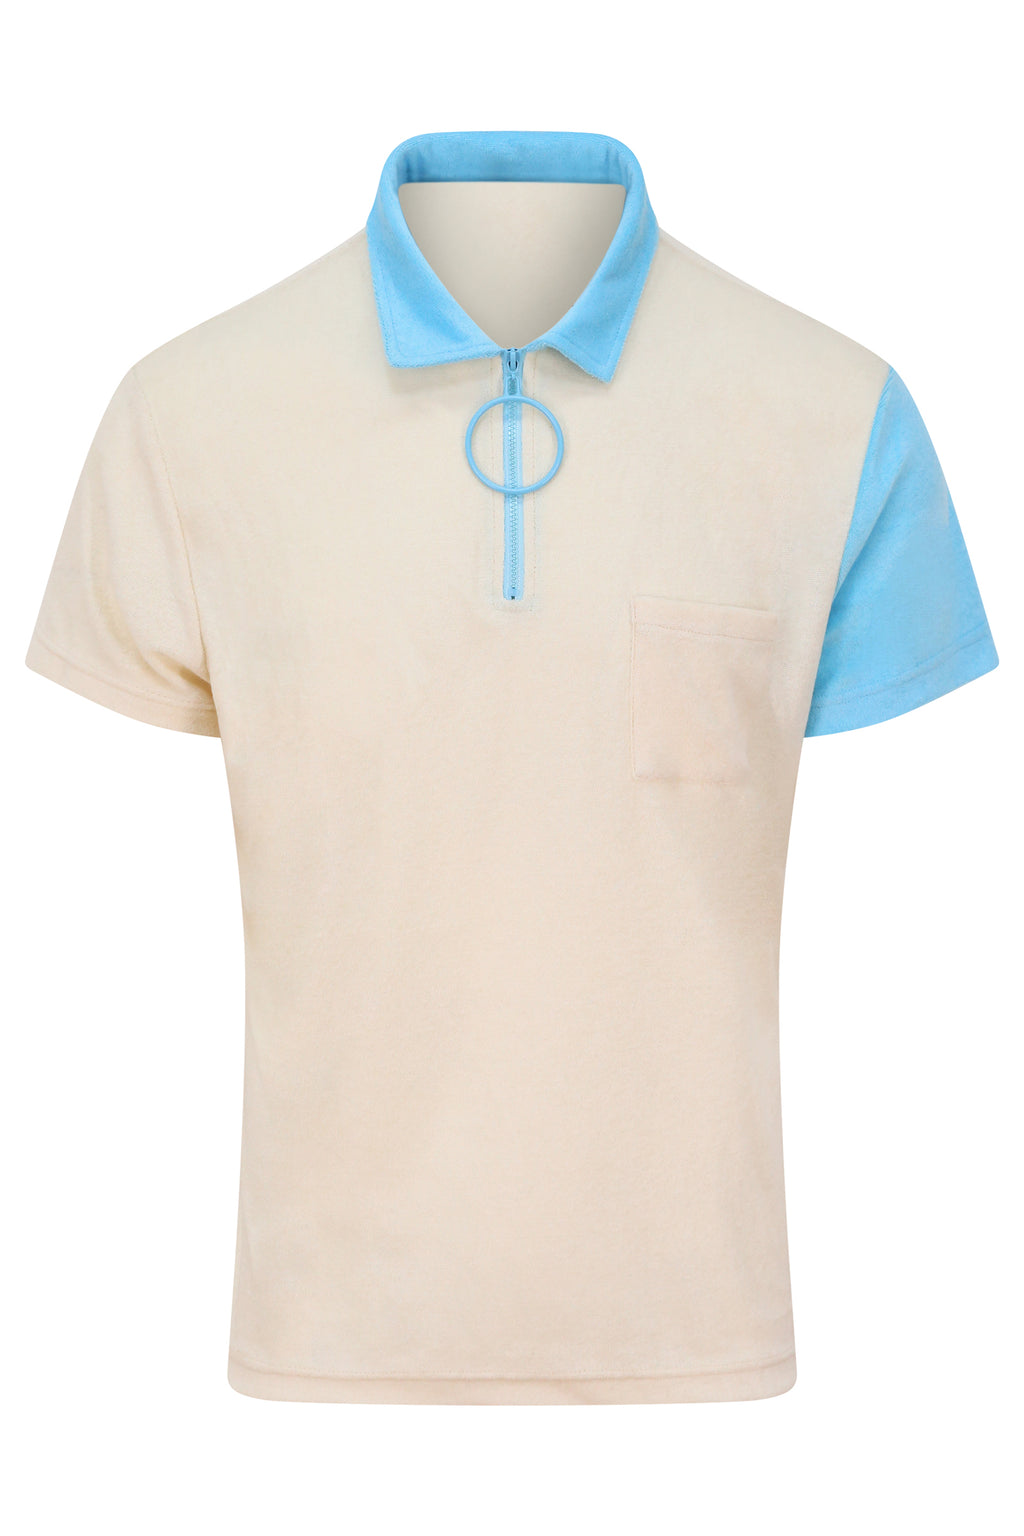 Unisex Cream and Blue Zip Polo